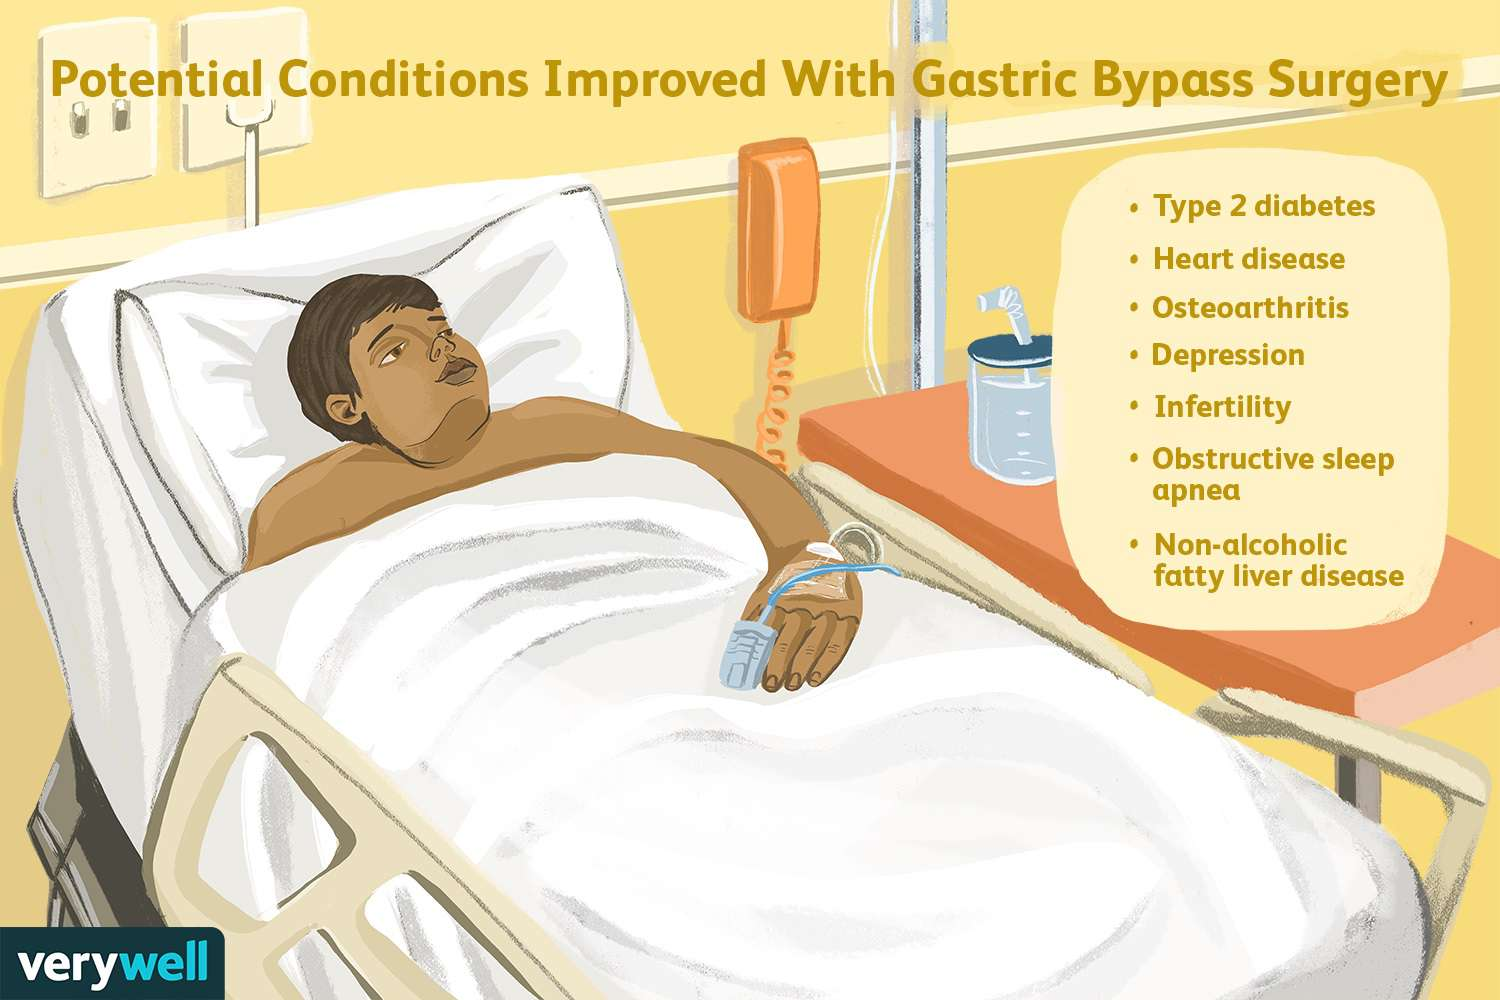 Potential Conditions Improved With Gastric Bypass Surgery